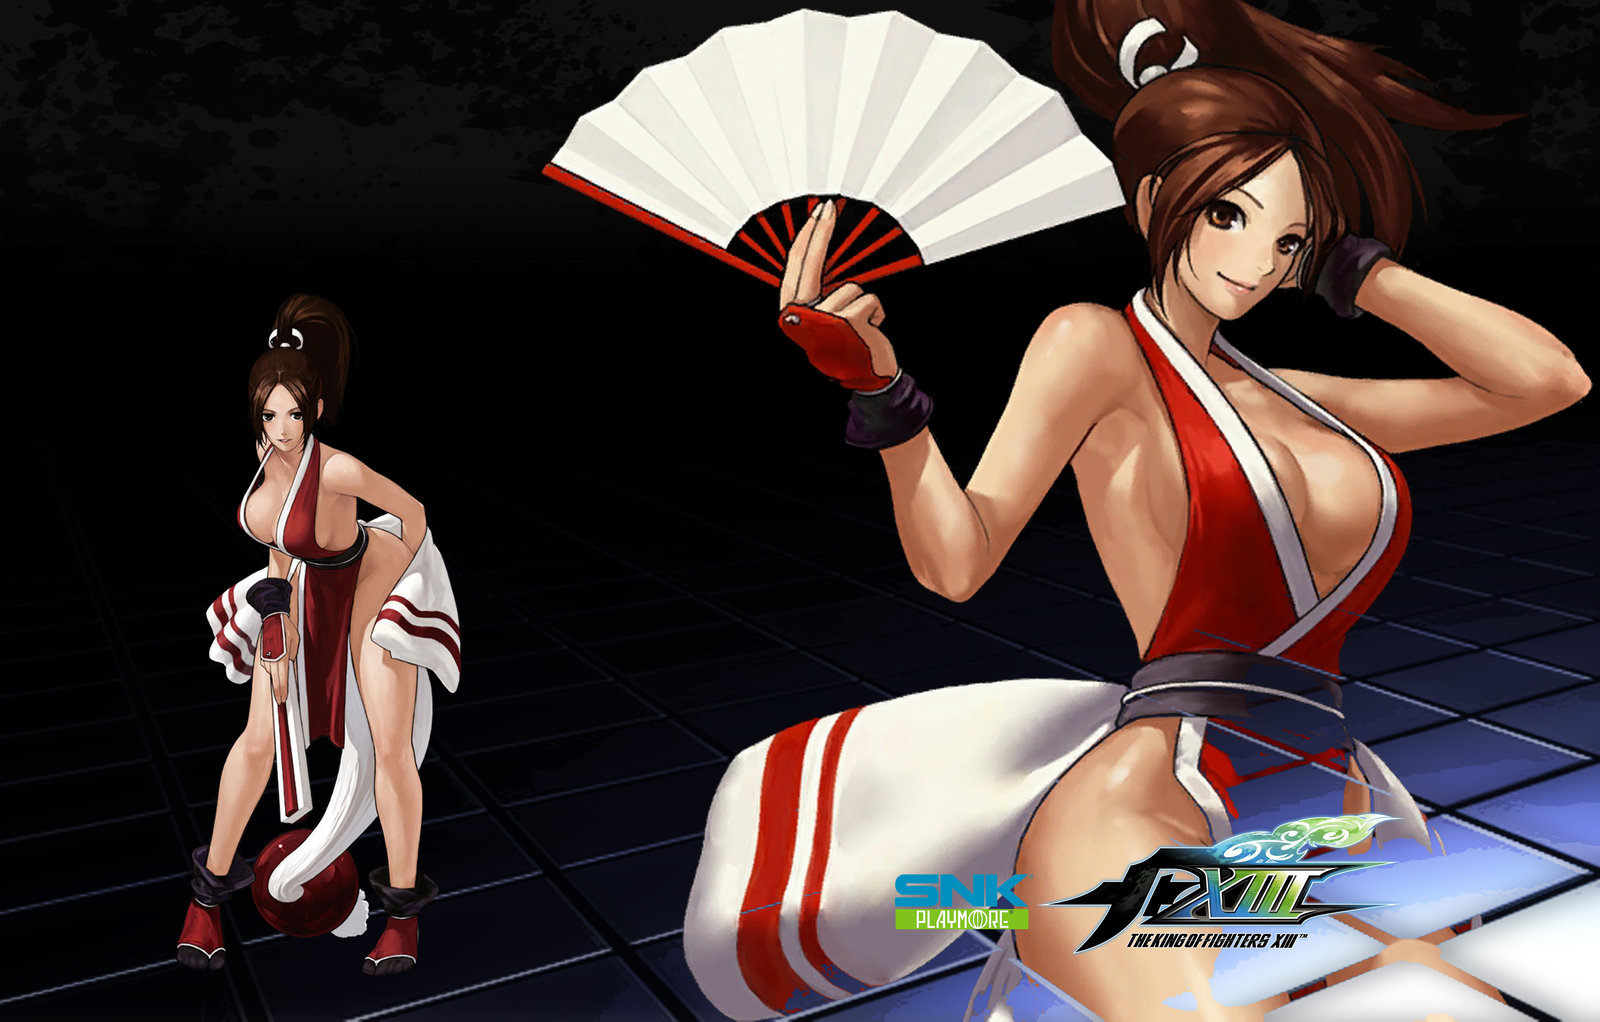 Idea King of fighters mai shiranui variant And